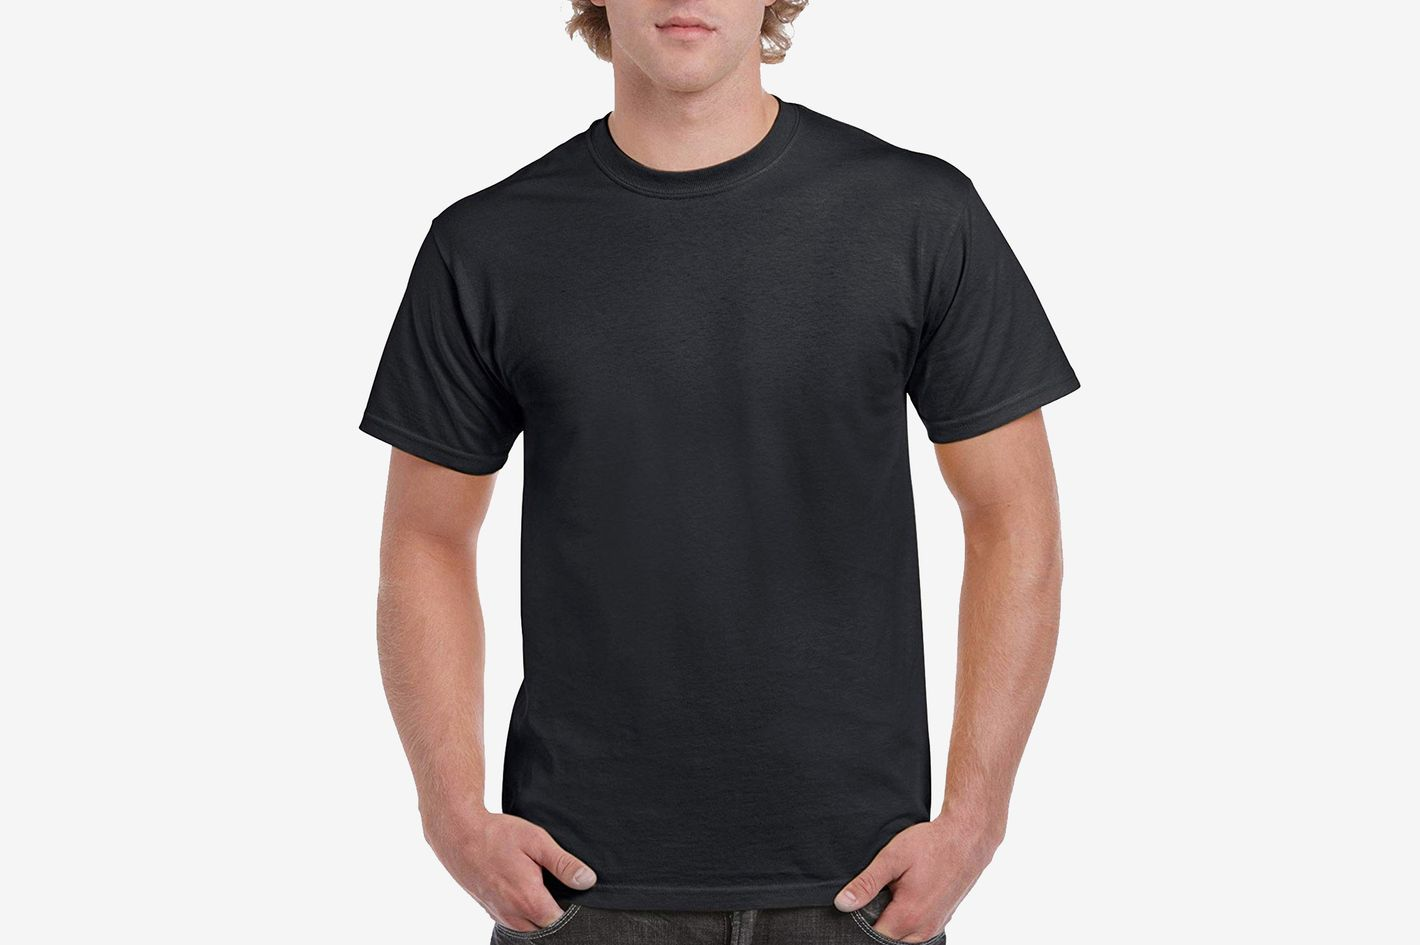 7a984f5c Gildan Men's Classic Cotton Short Sleeve T-Shirt